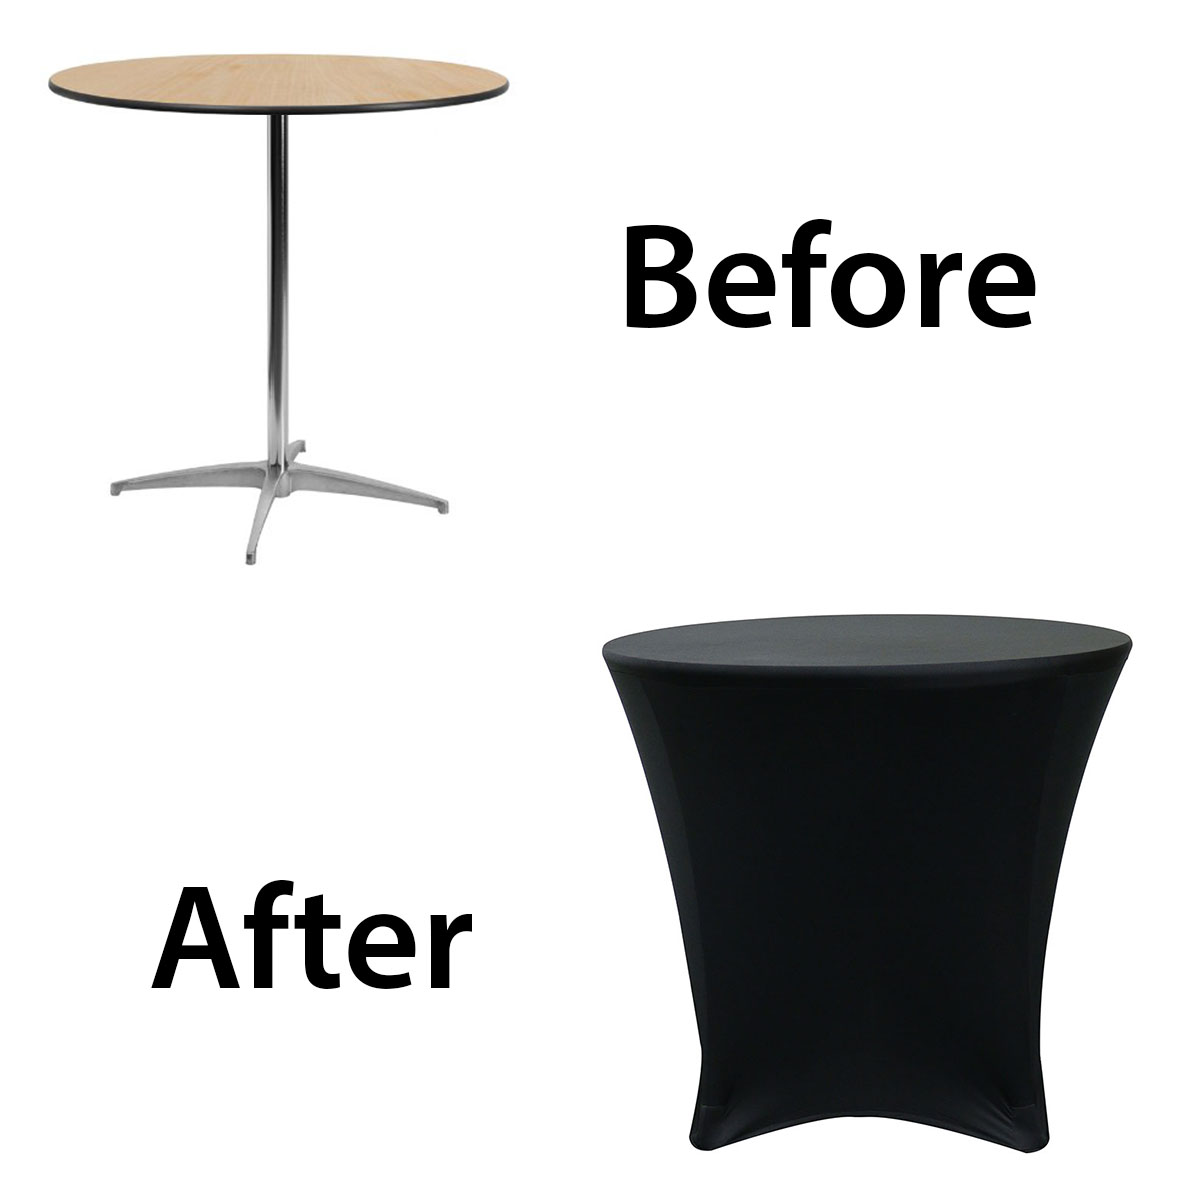 30-30-inch-lowboy-cocktail-spandex-table-covers-black-before-after.jpg